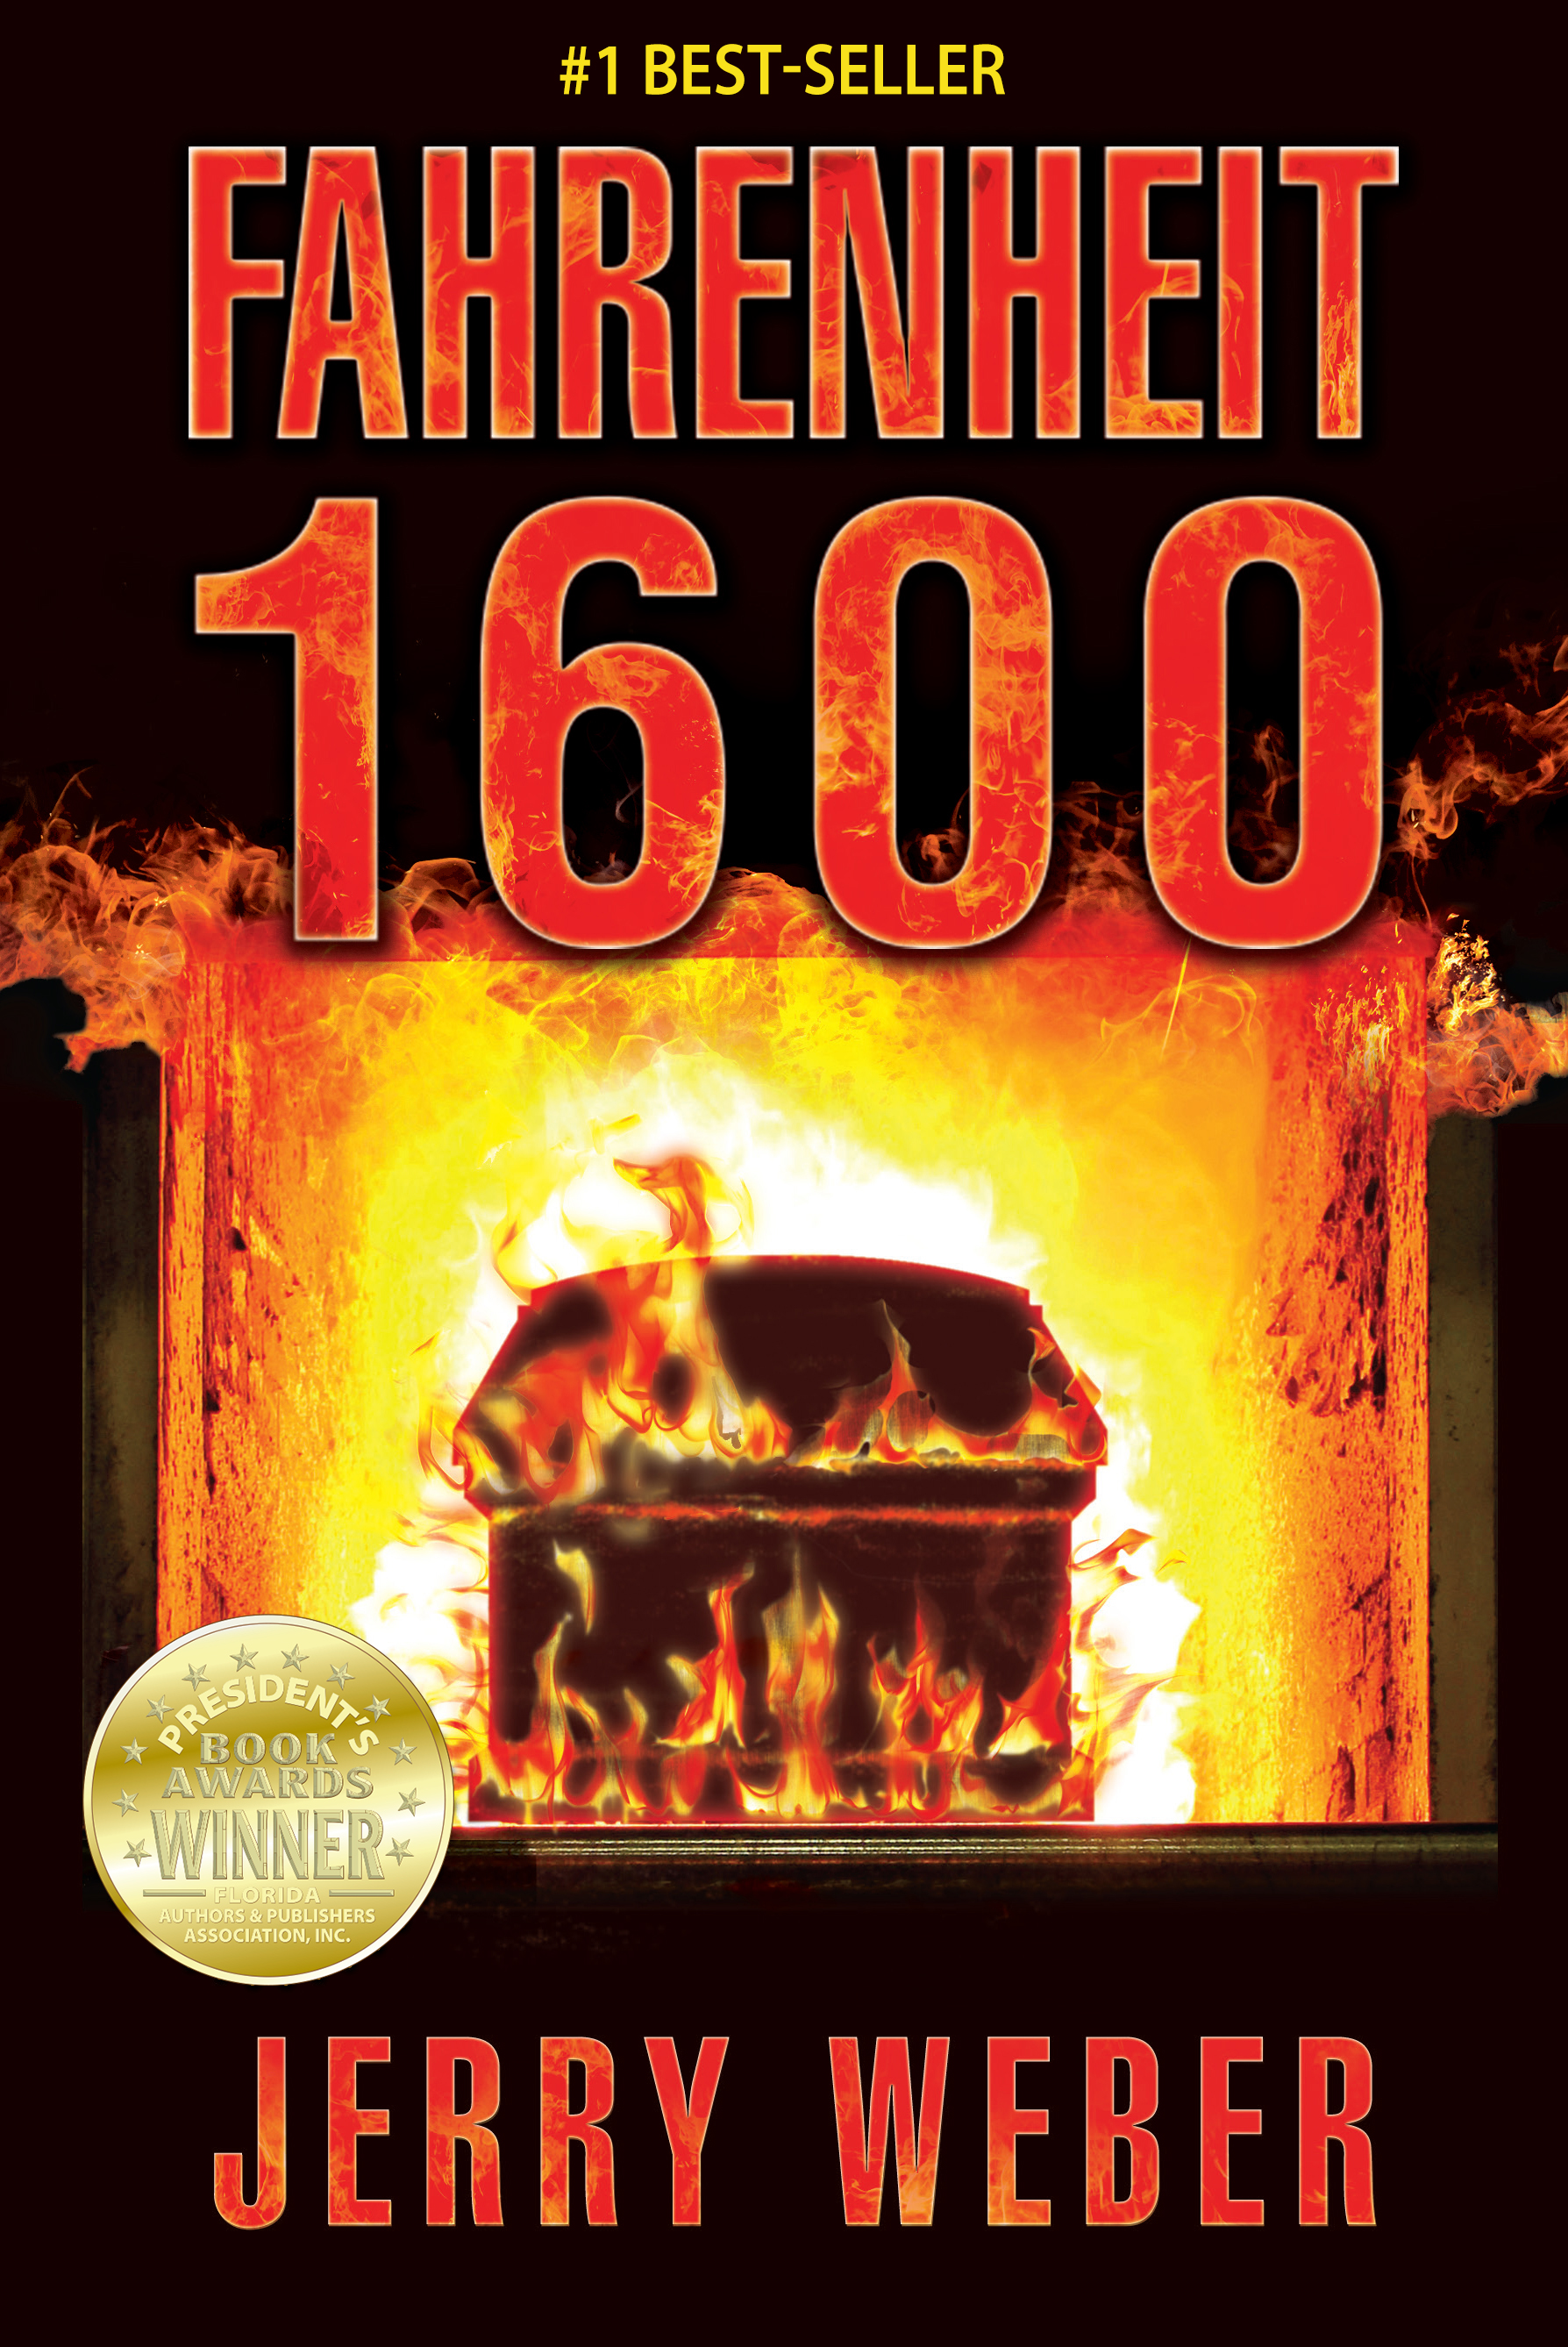 Fahrenheit 1600 by author Jerry Weber